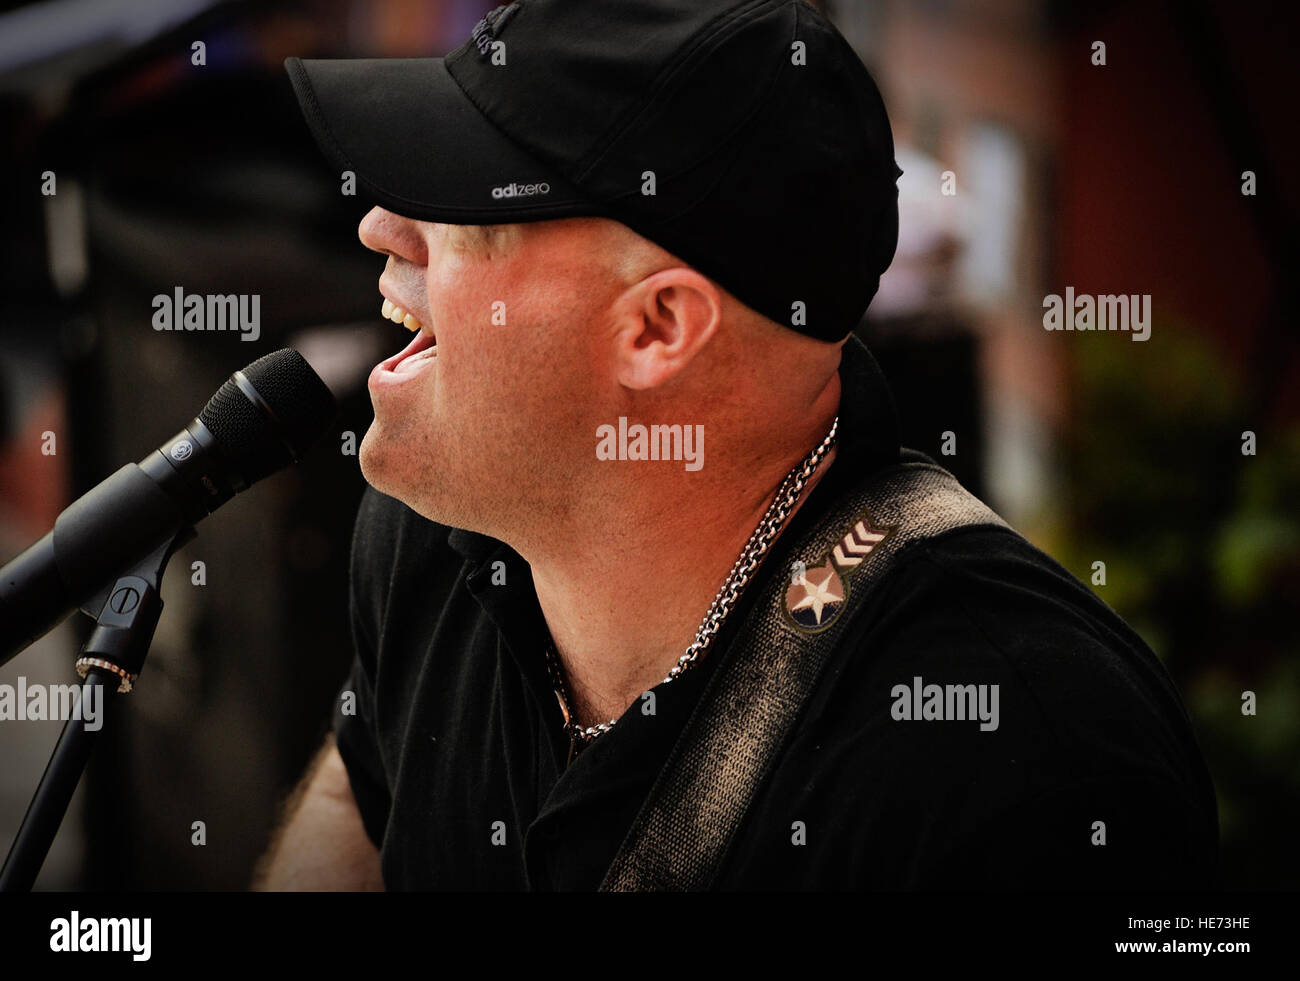 Tech. Sgt. Jason Cale, U.S. Air Forces in Europe and Air Forces Africa band guitarist and vocalist, performs in - Stock Image